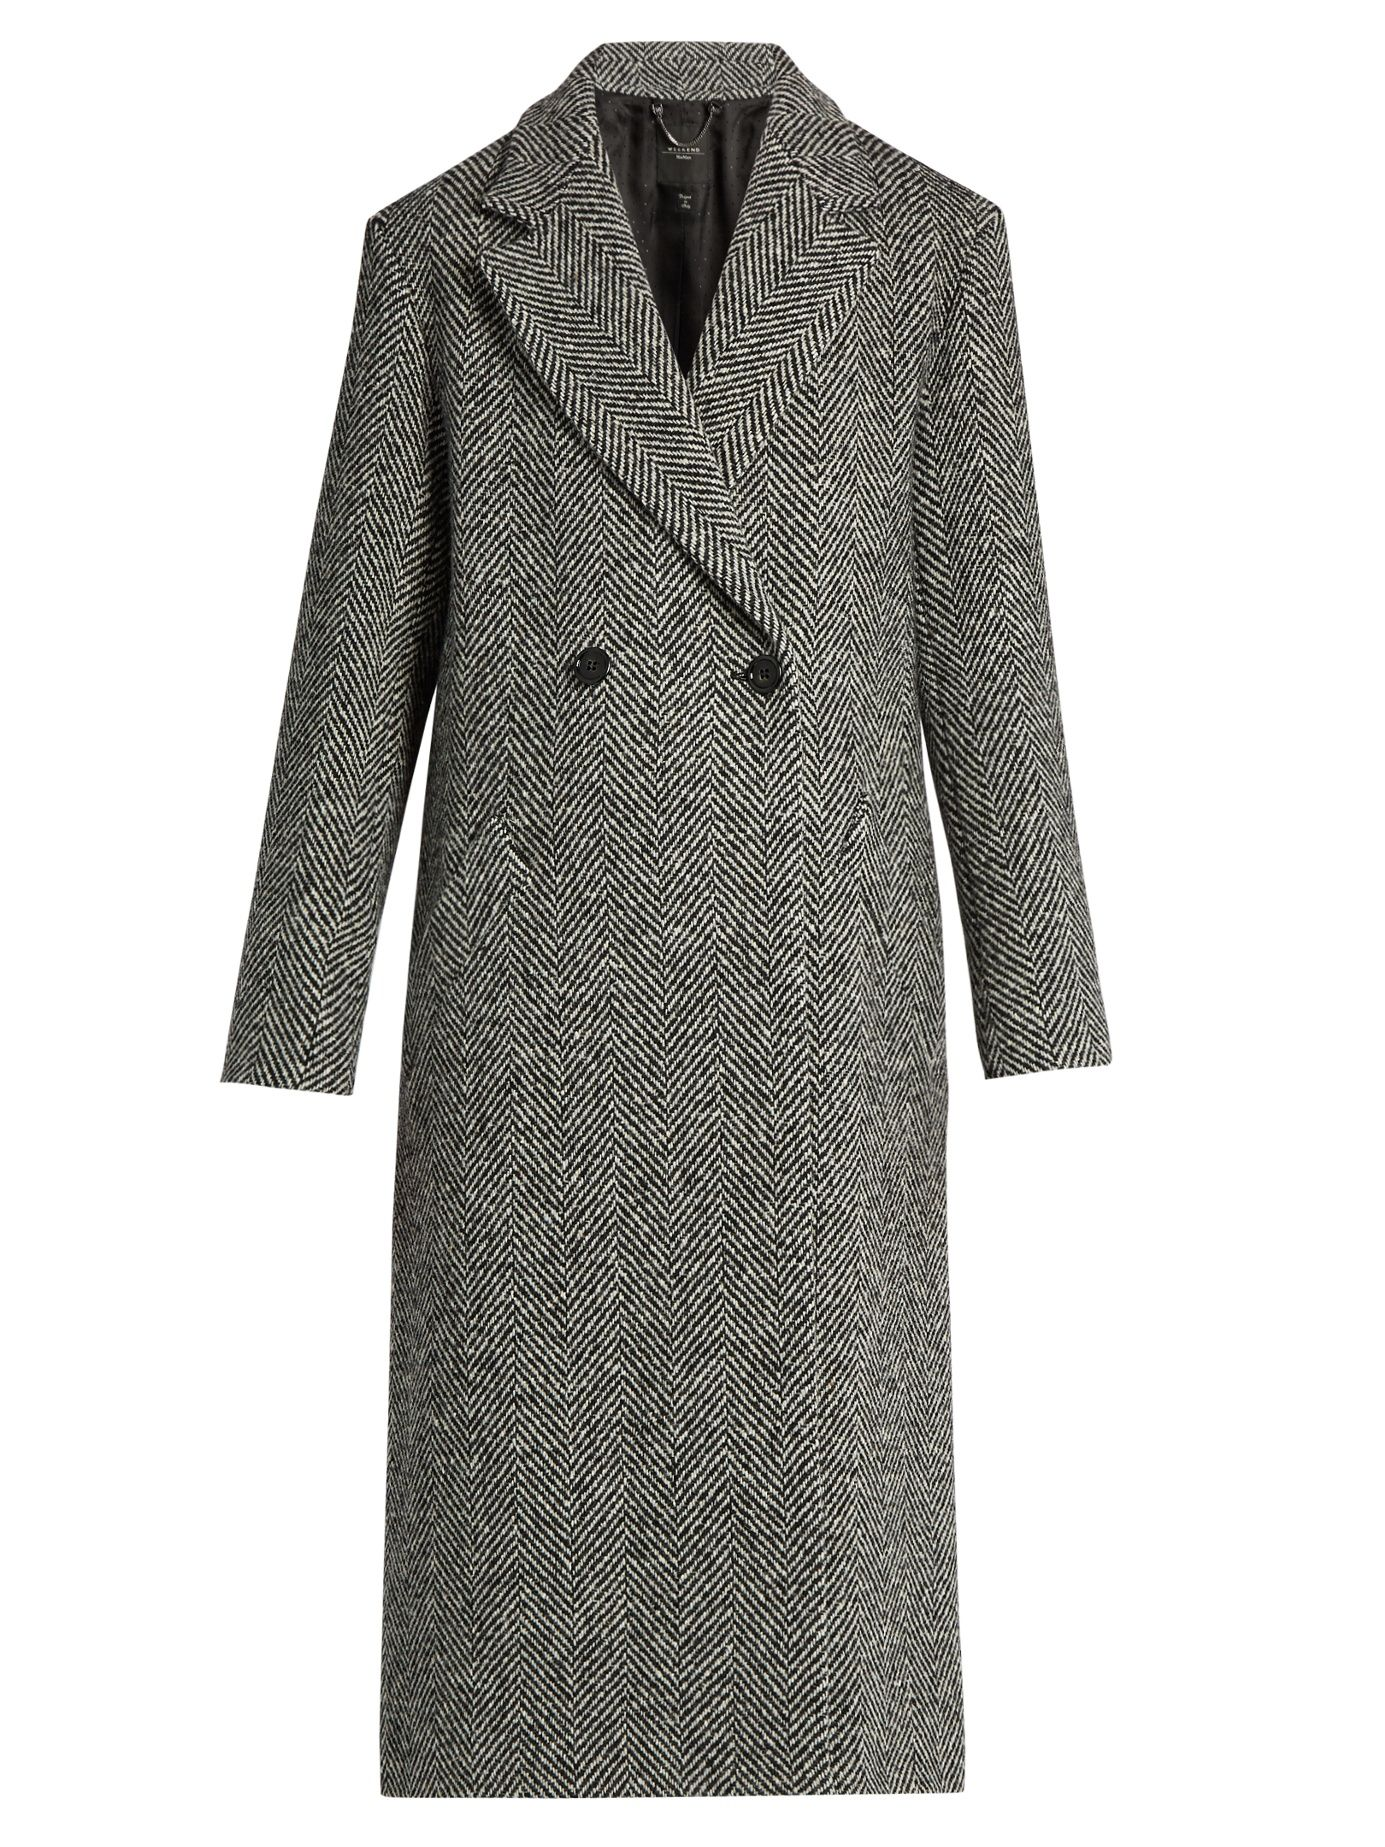 539561c1a96ec1 Latina coat | Weekend Max Mara | MATCHESFASHION.COM | пальто in 2019 ...